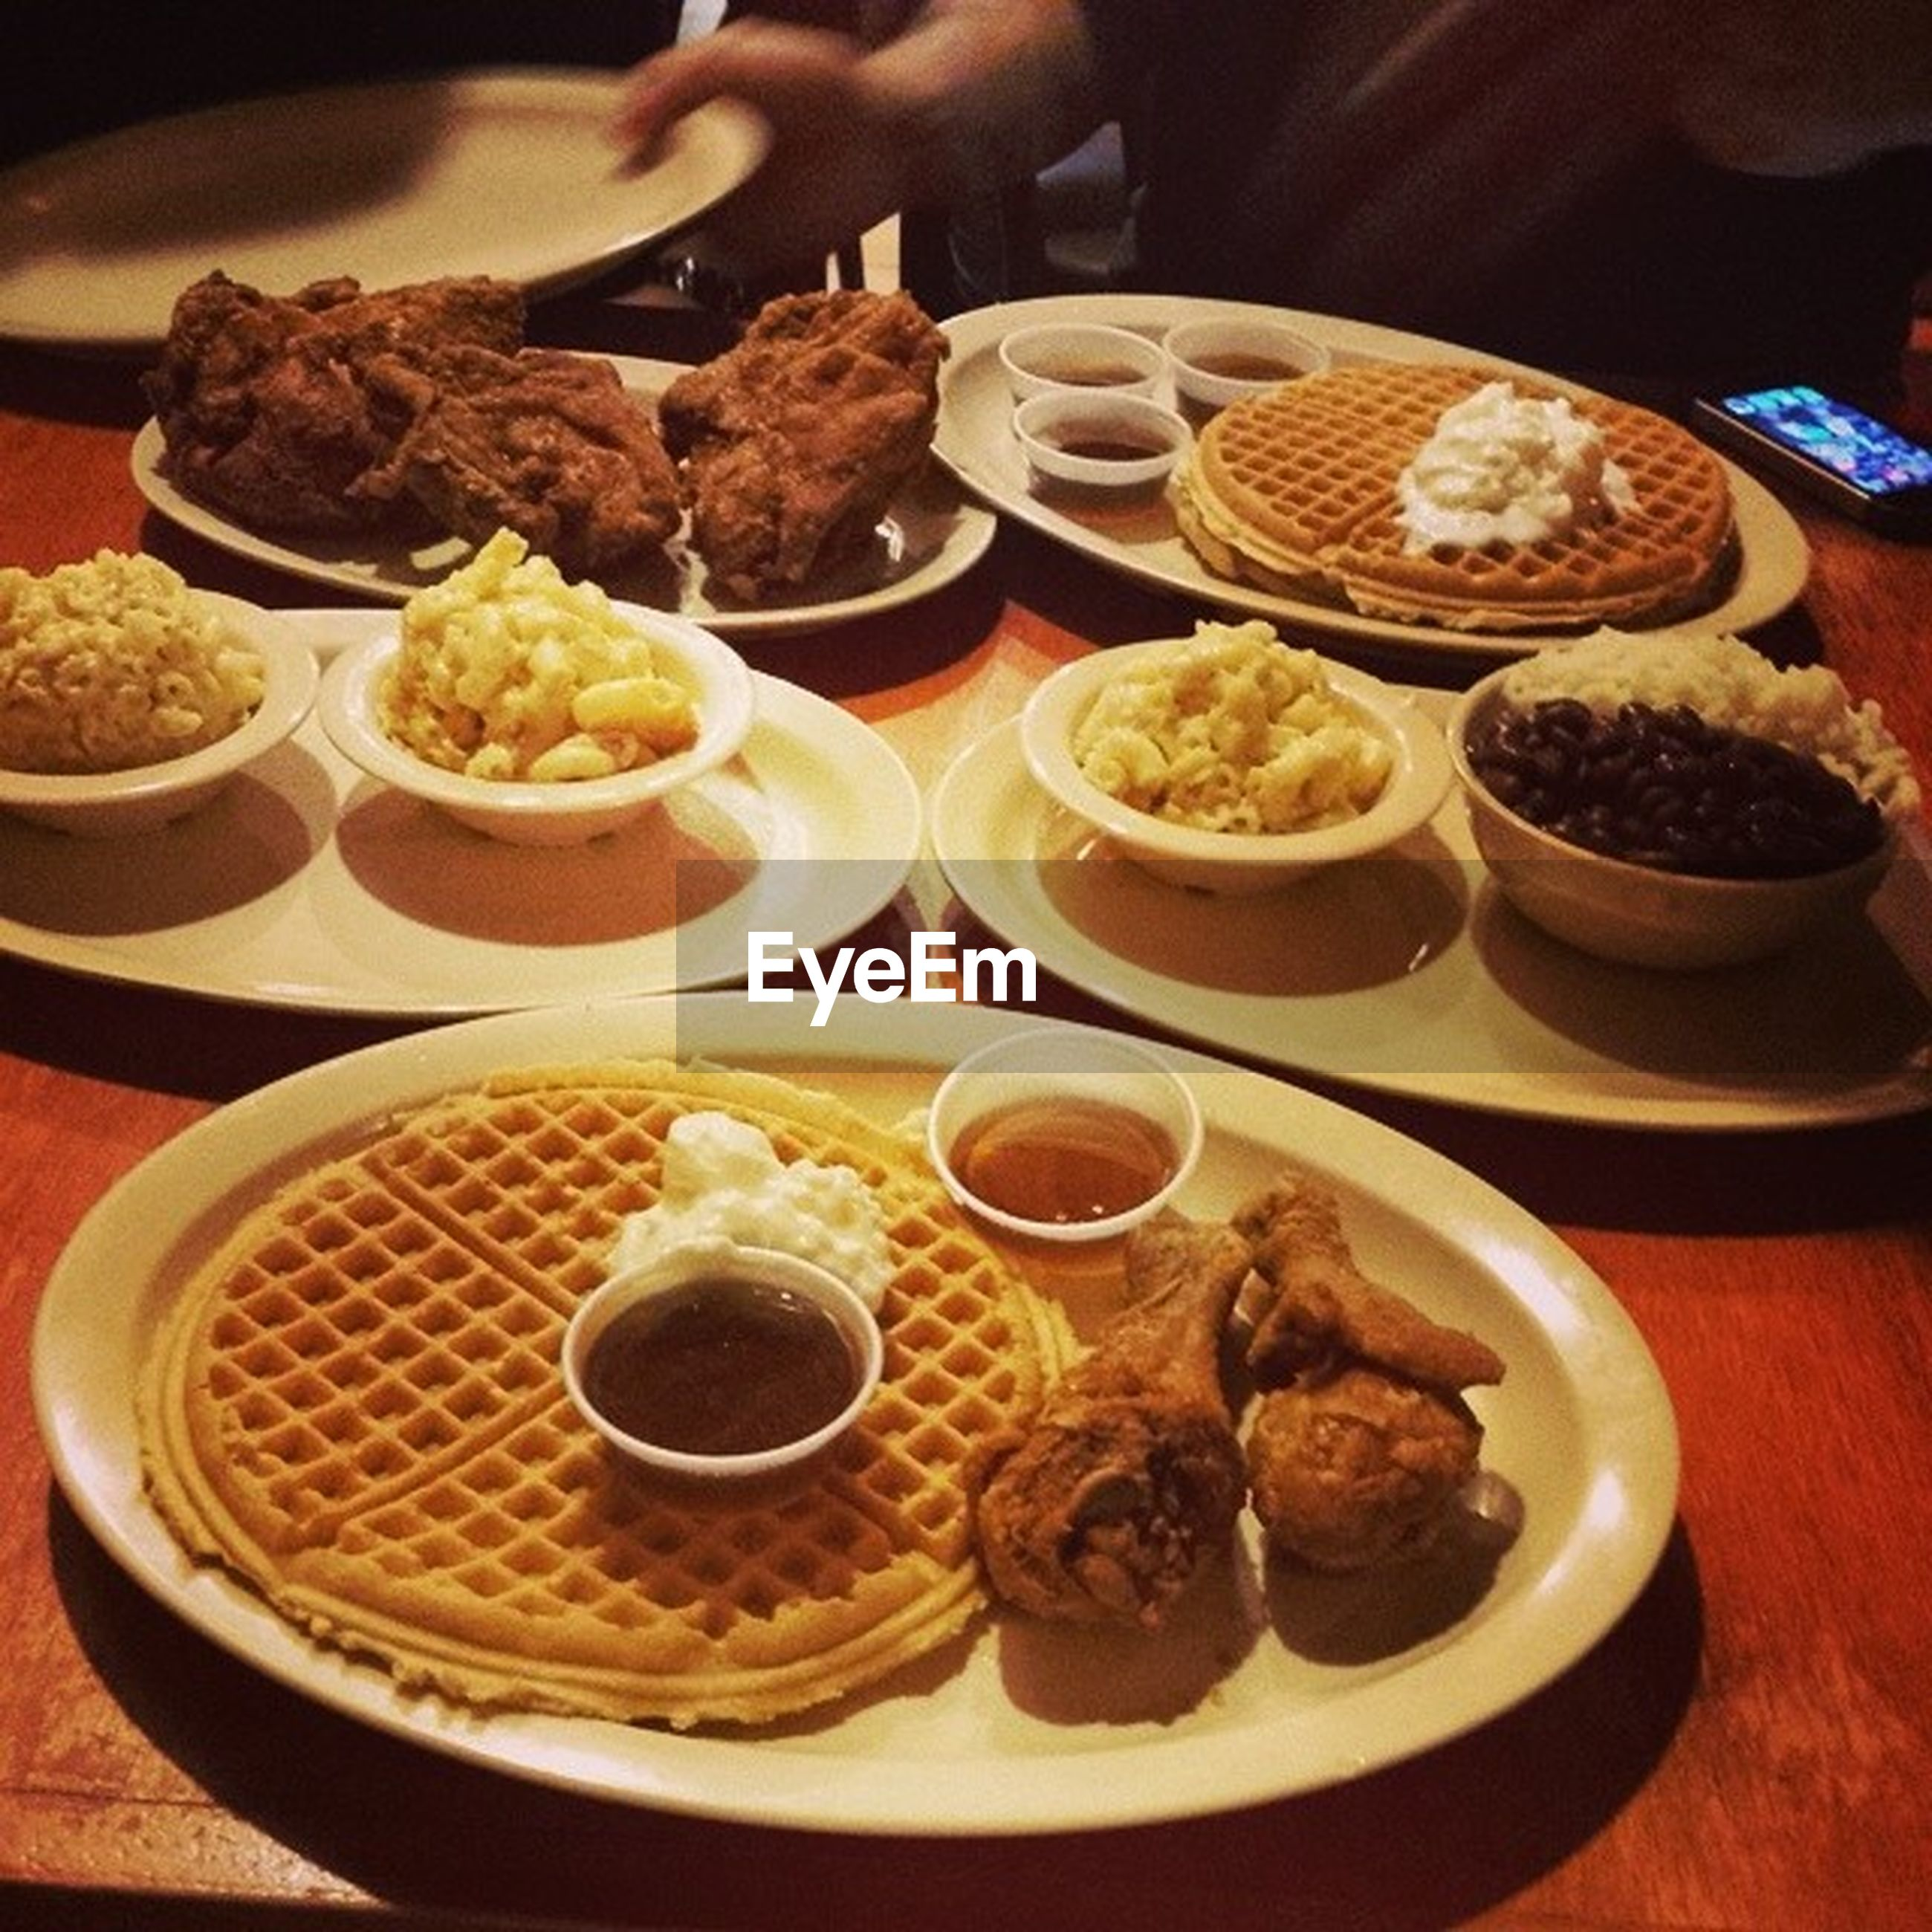 food and drink, food, indoors, freshness, table, ready-to-eat, plate, sweet food, indulgence, high angle view, still life, unhealthy eating, dessert, drink, serving size, bowl, close-up, meal, refreshment